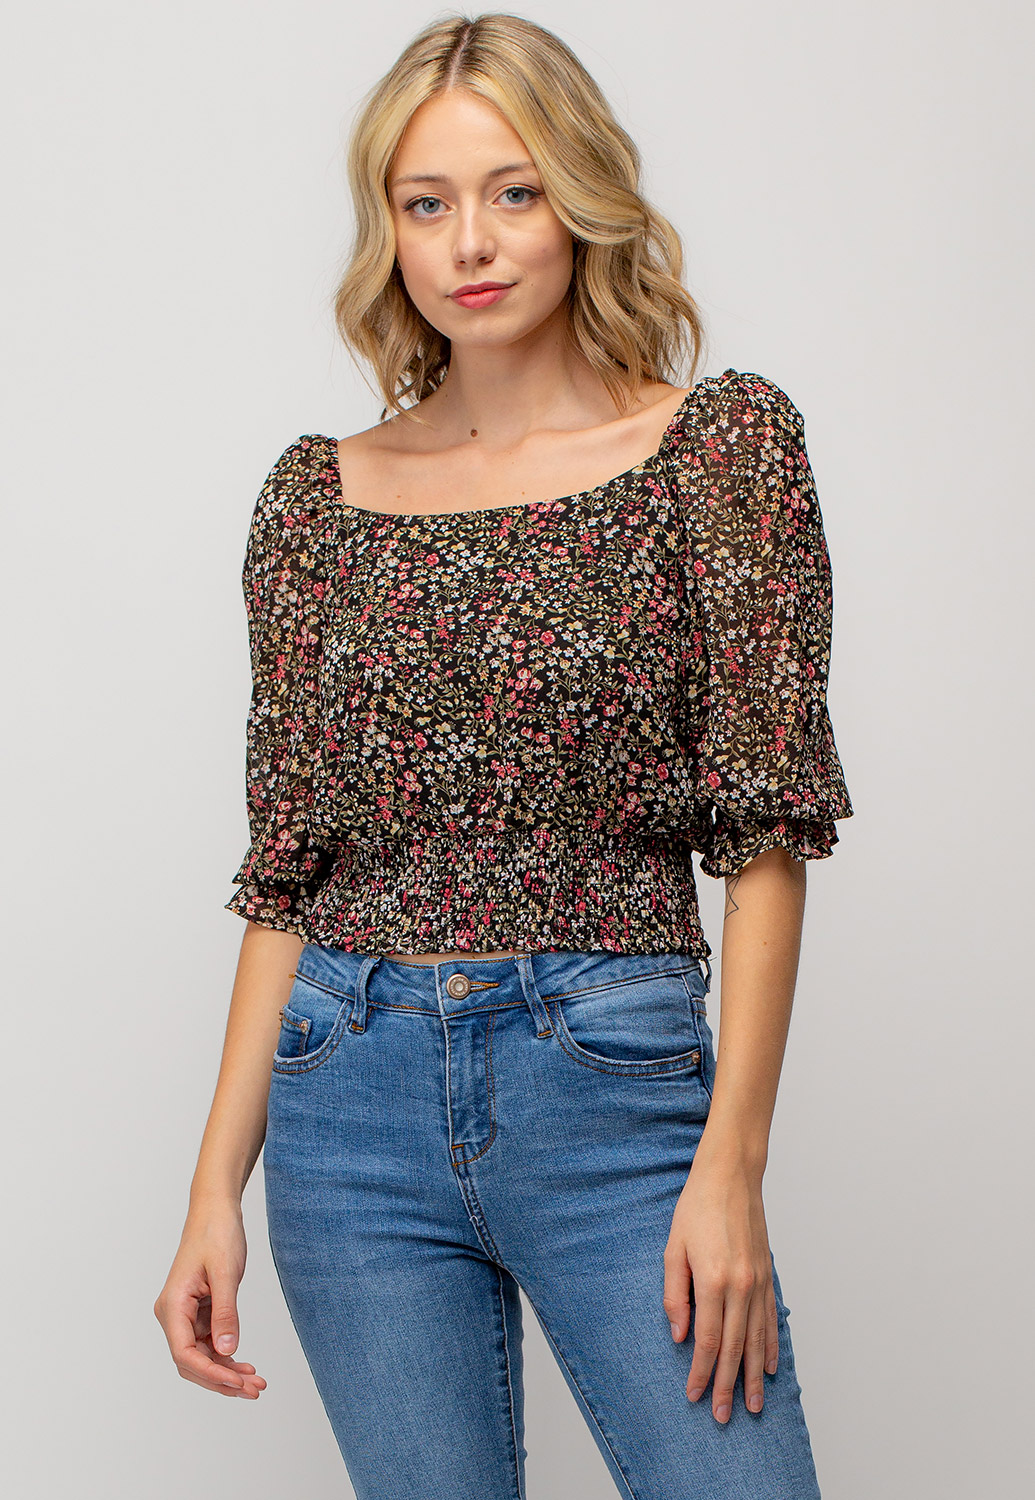 Square Neck Floral Smocked Top With Tie Back